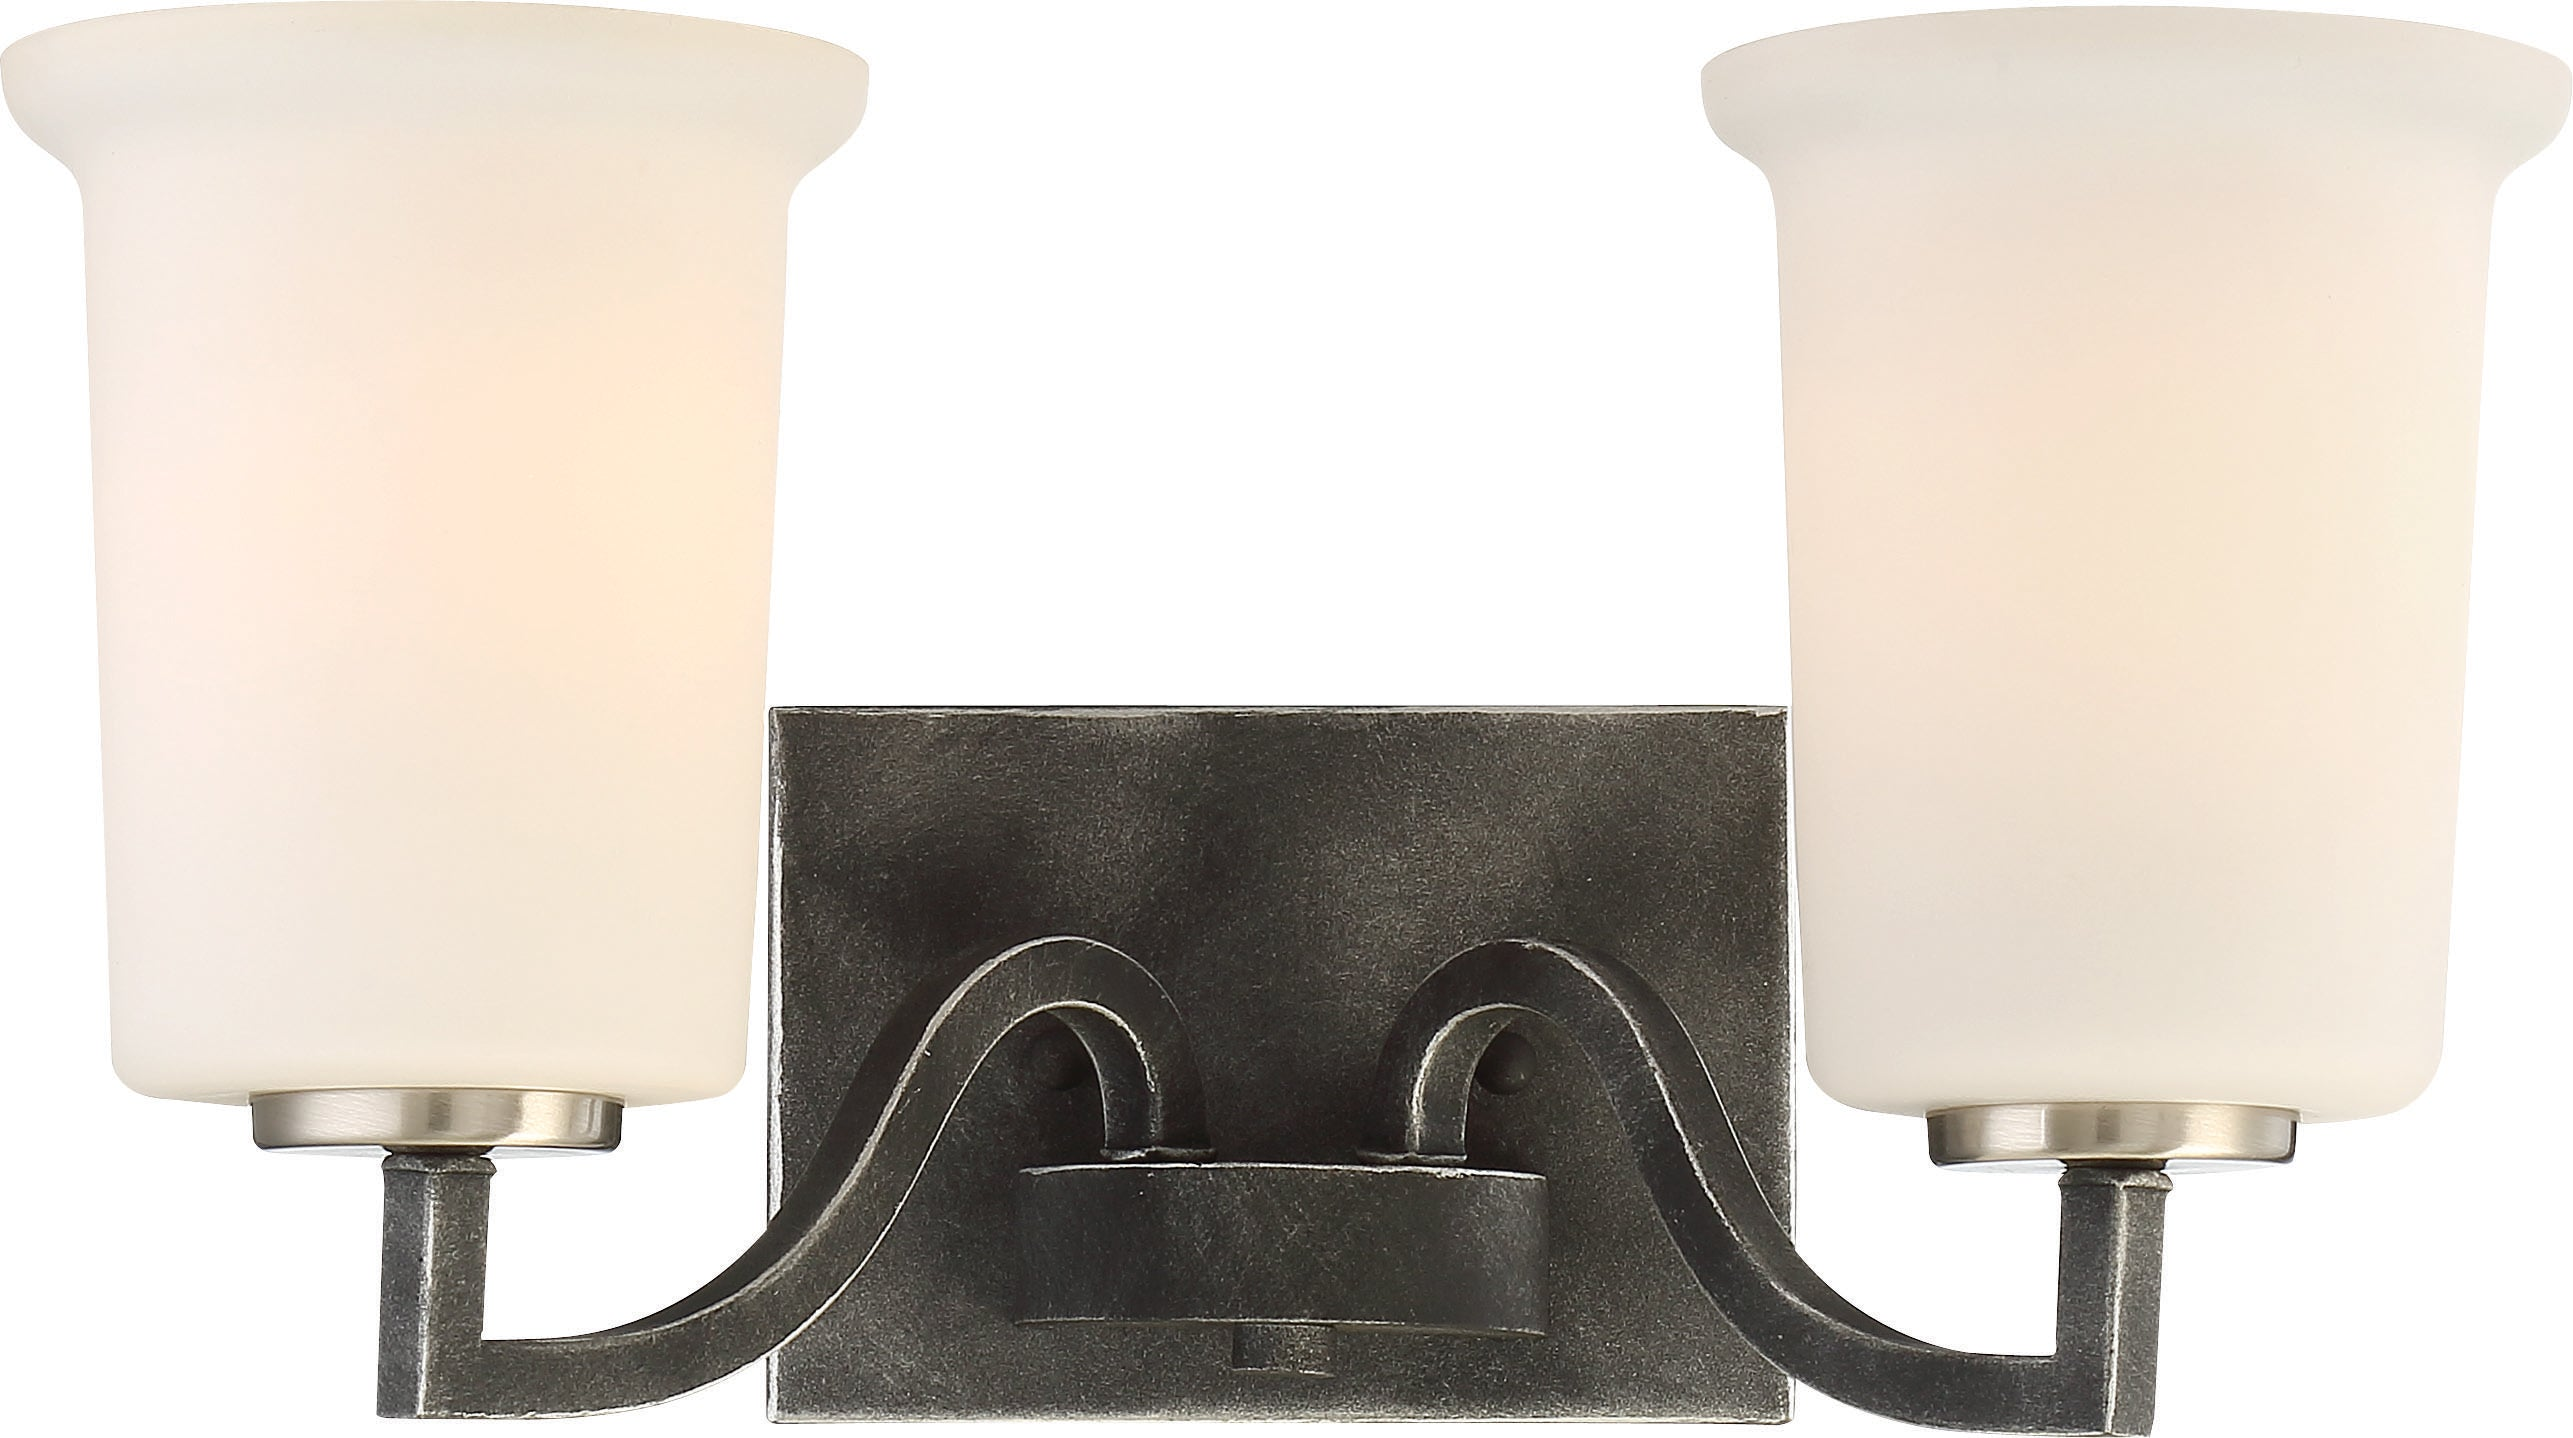 Chester 2-Light Wall Mounted Vanity & Wall Light Fixture in Iron Black Finish